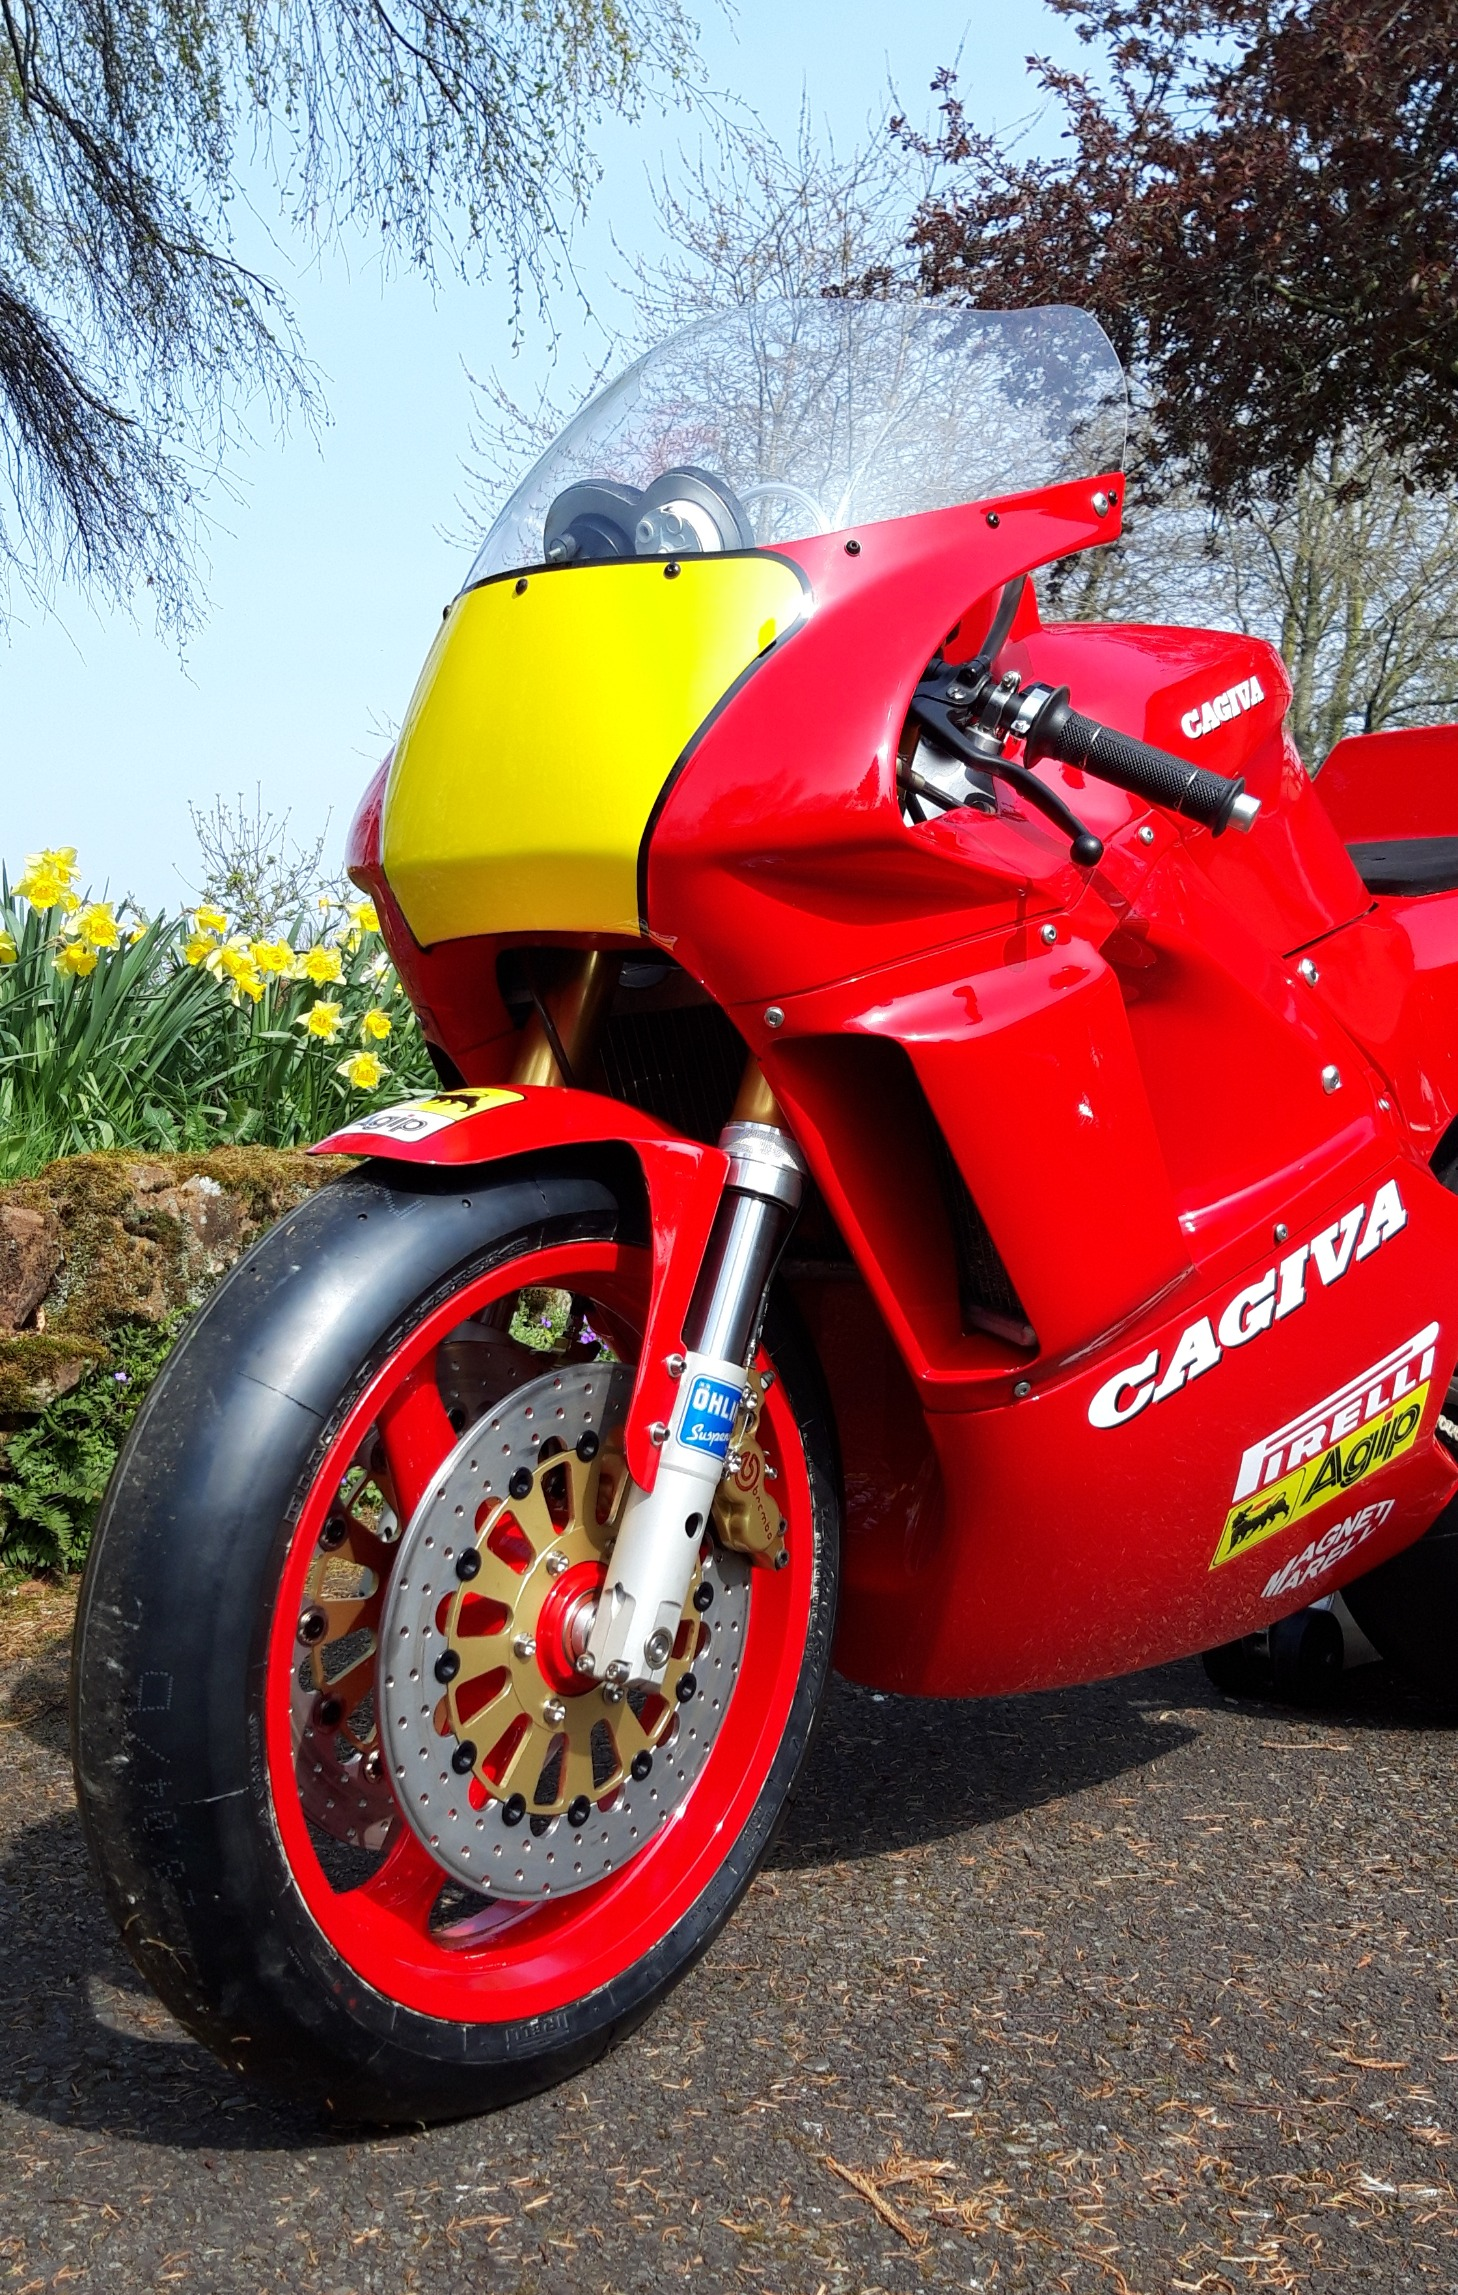 Cagiva C588 Front View1